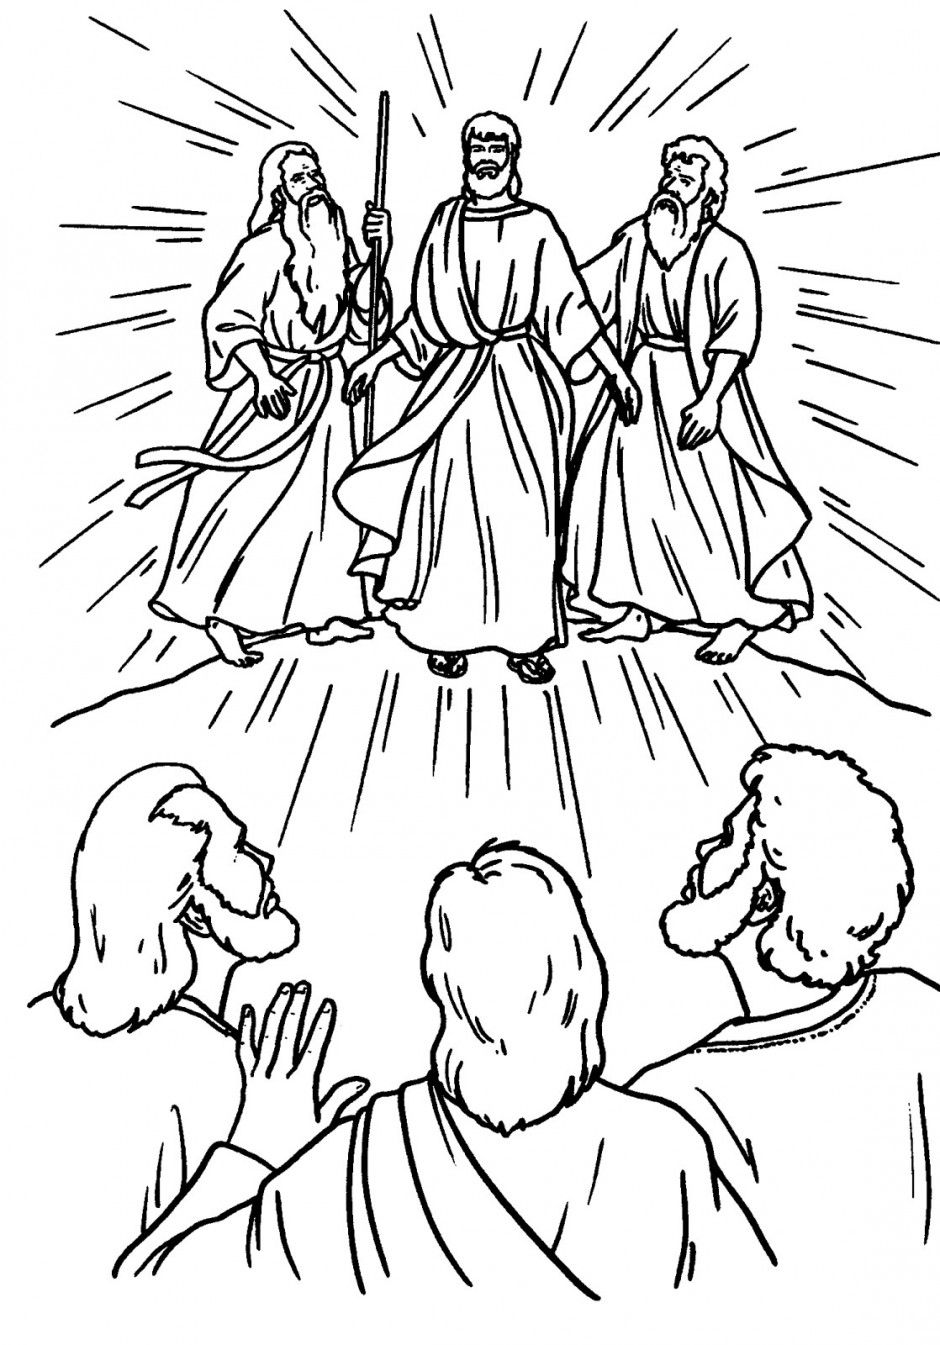 Http Www Thecoloringpics Net Images 2014 08 Transfiguration 05